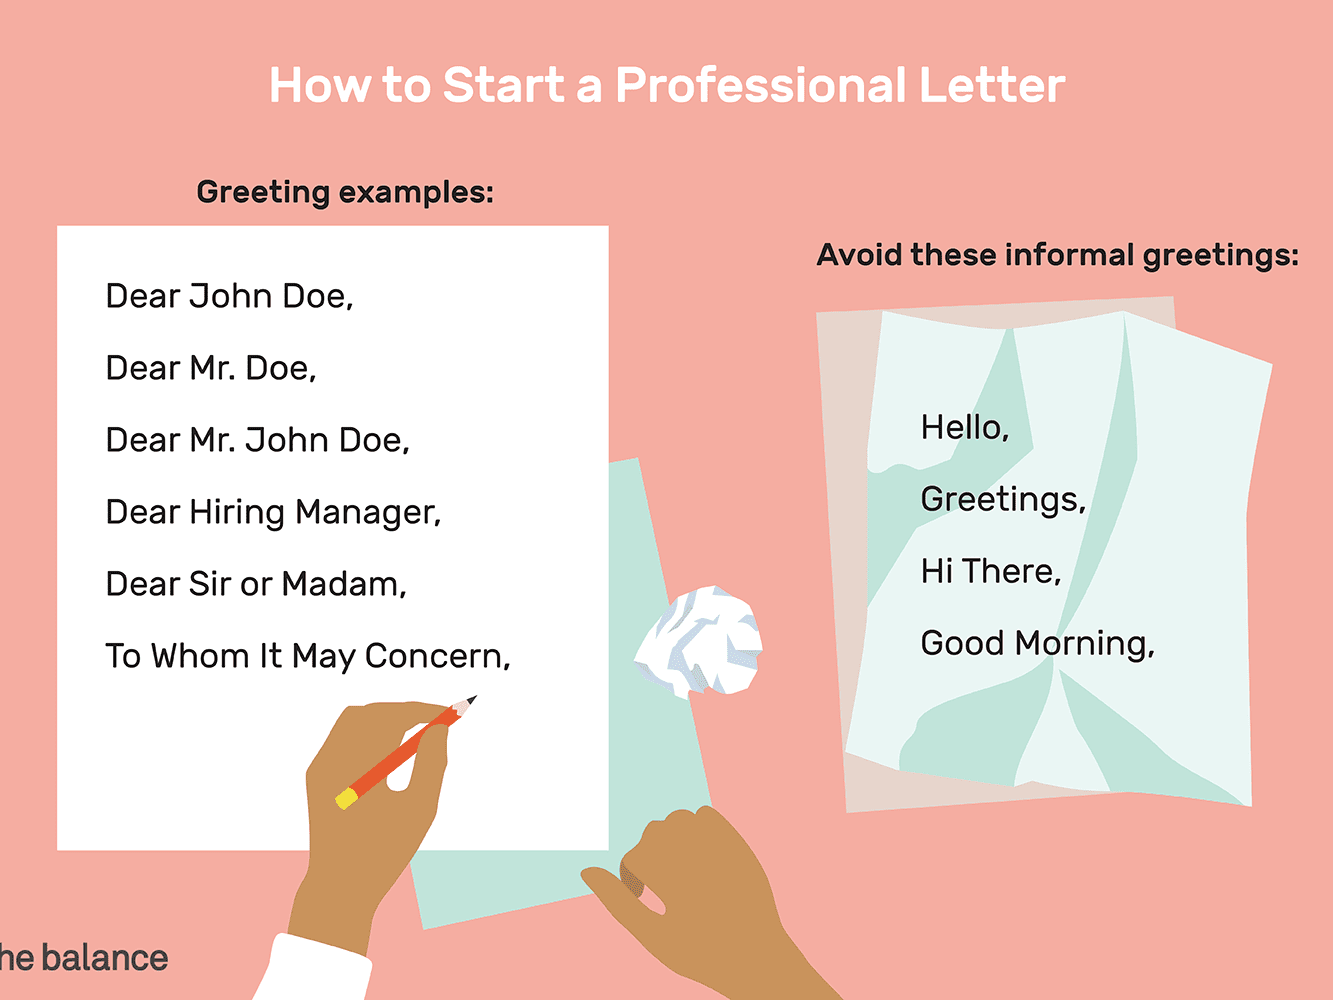 How to Start a Letter With Professional Greeting Examples